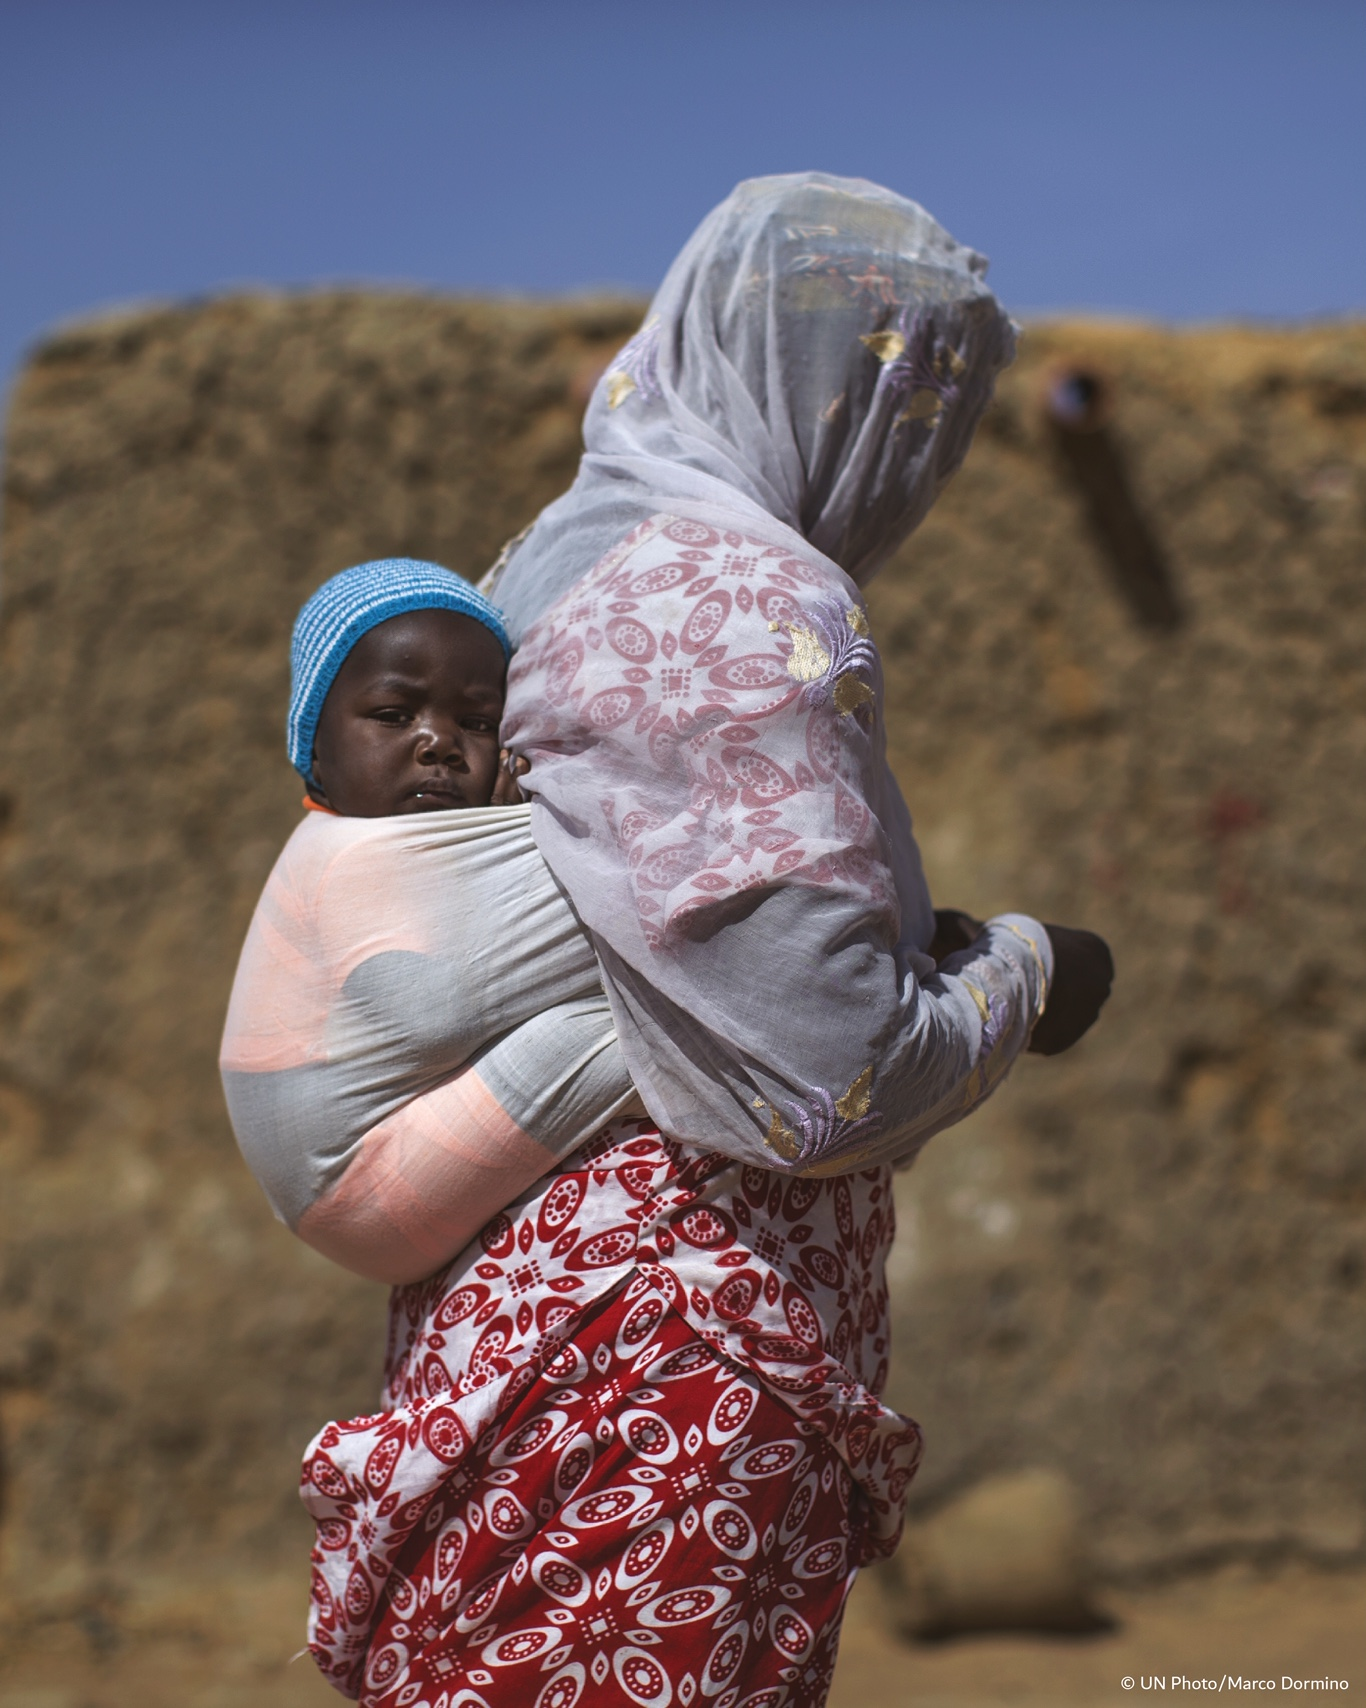 In Mali, a woman and her child displaced by violence in Timbuktu in 2015 walk through a village for internally displaced people in Mopti. Courtesy UN Photo/Marco Dormino.